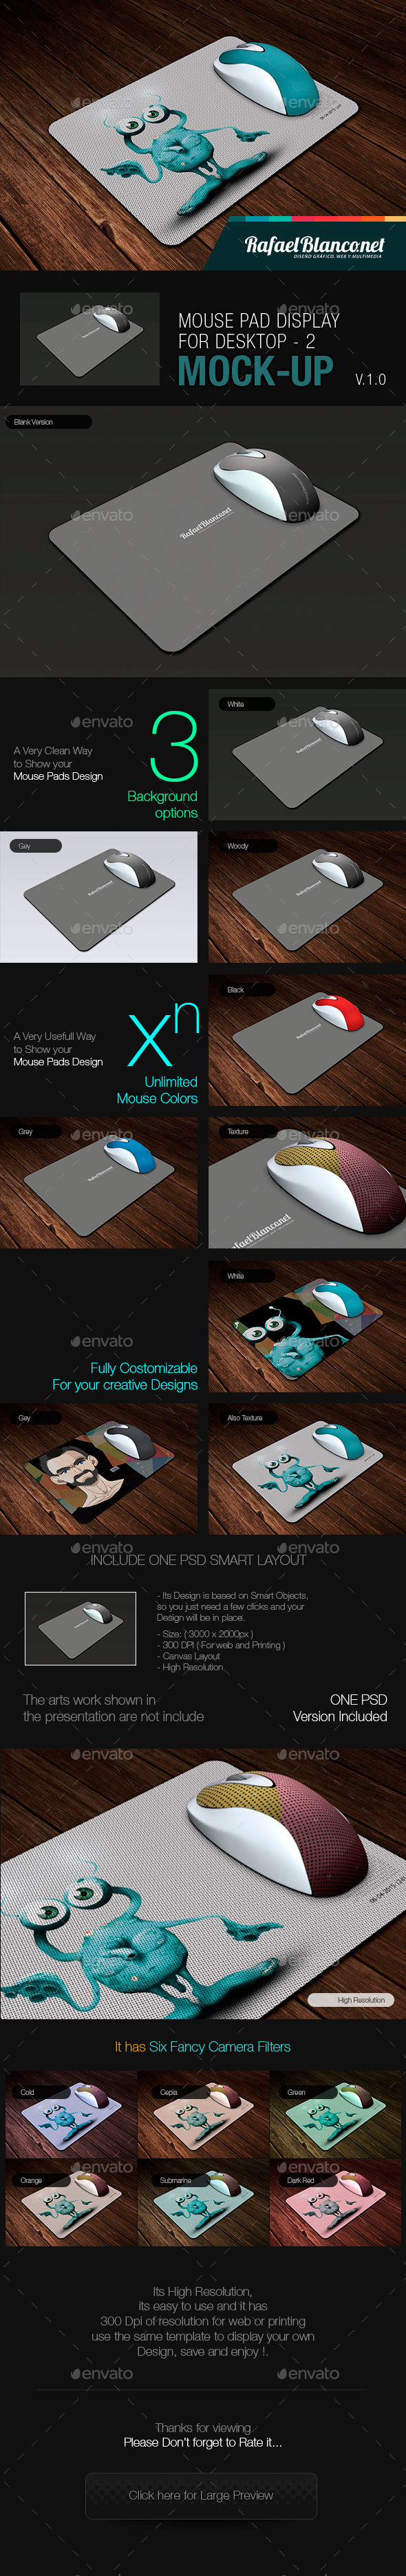 Mouse Pad Mock-Up - 2 - Miscellaneous Displays